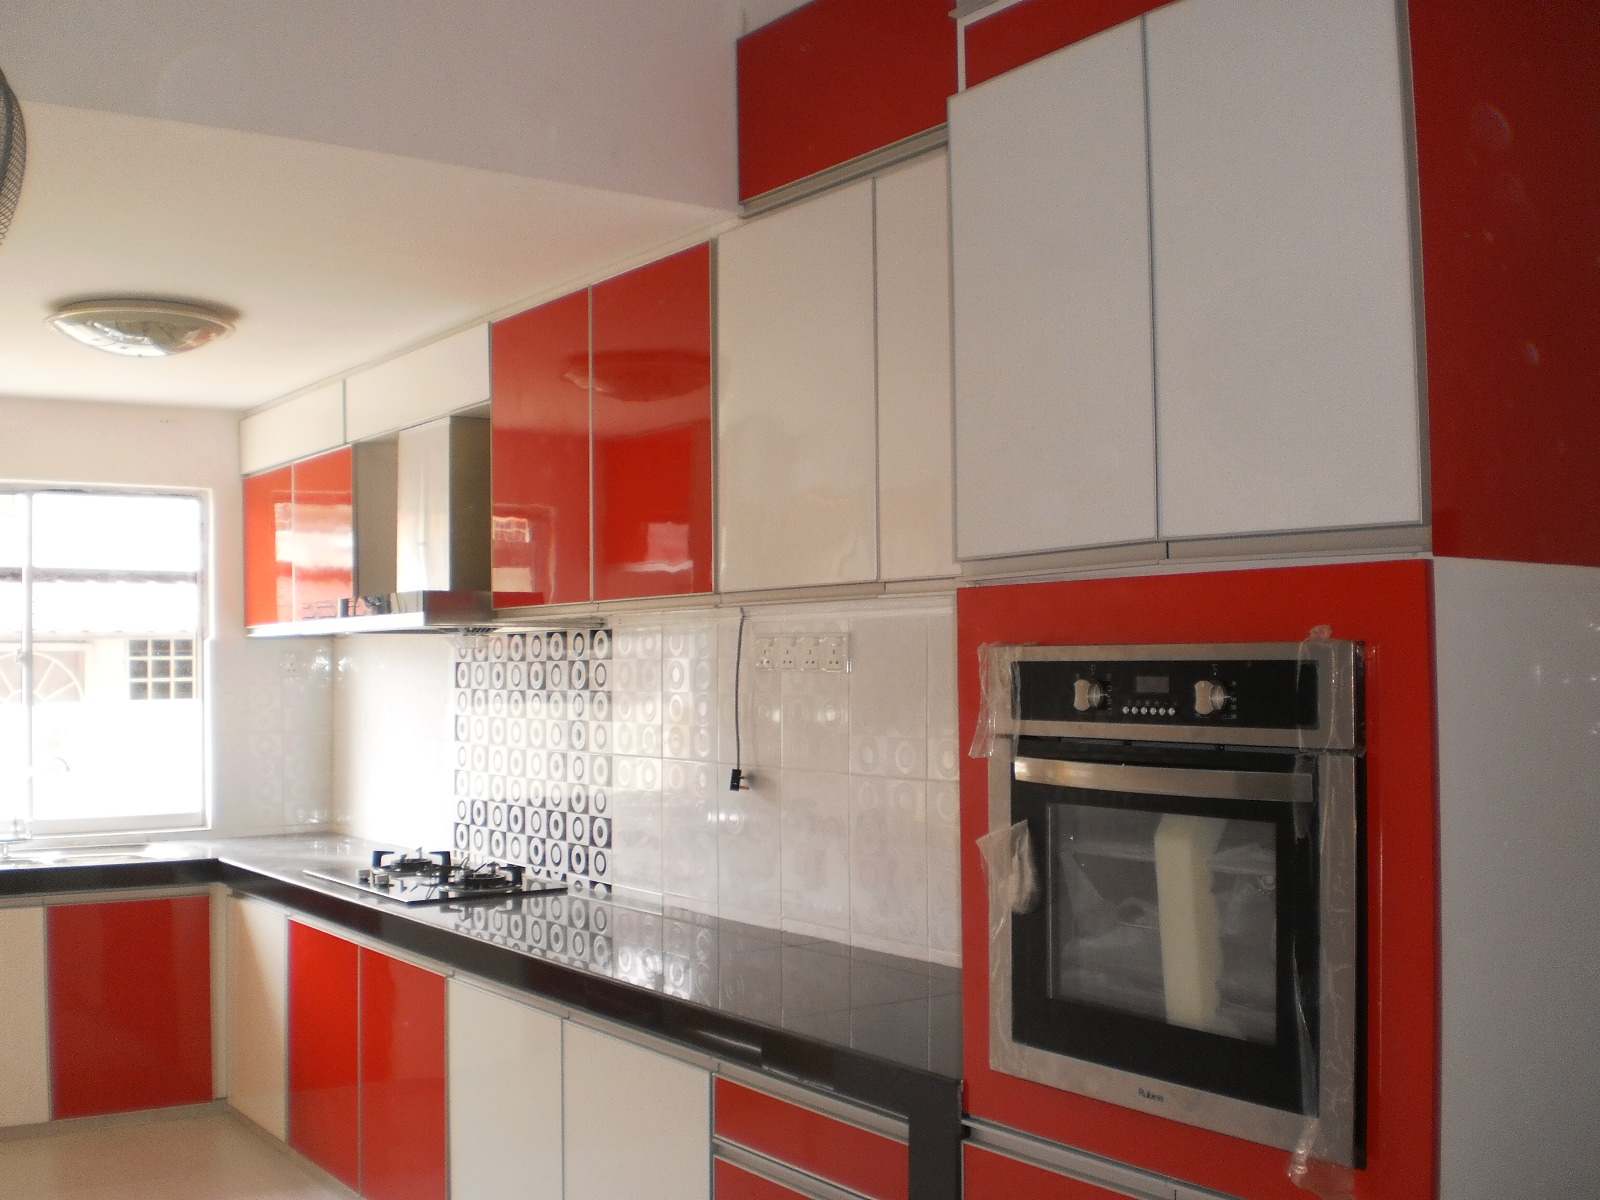 Kitchen Top Cabinet Kabinet Dapur And Table Top Design Kitchen Cabinet Review